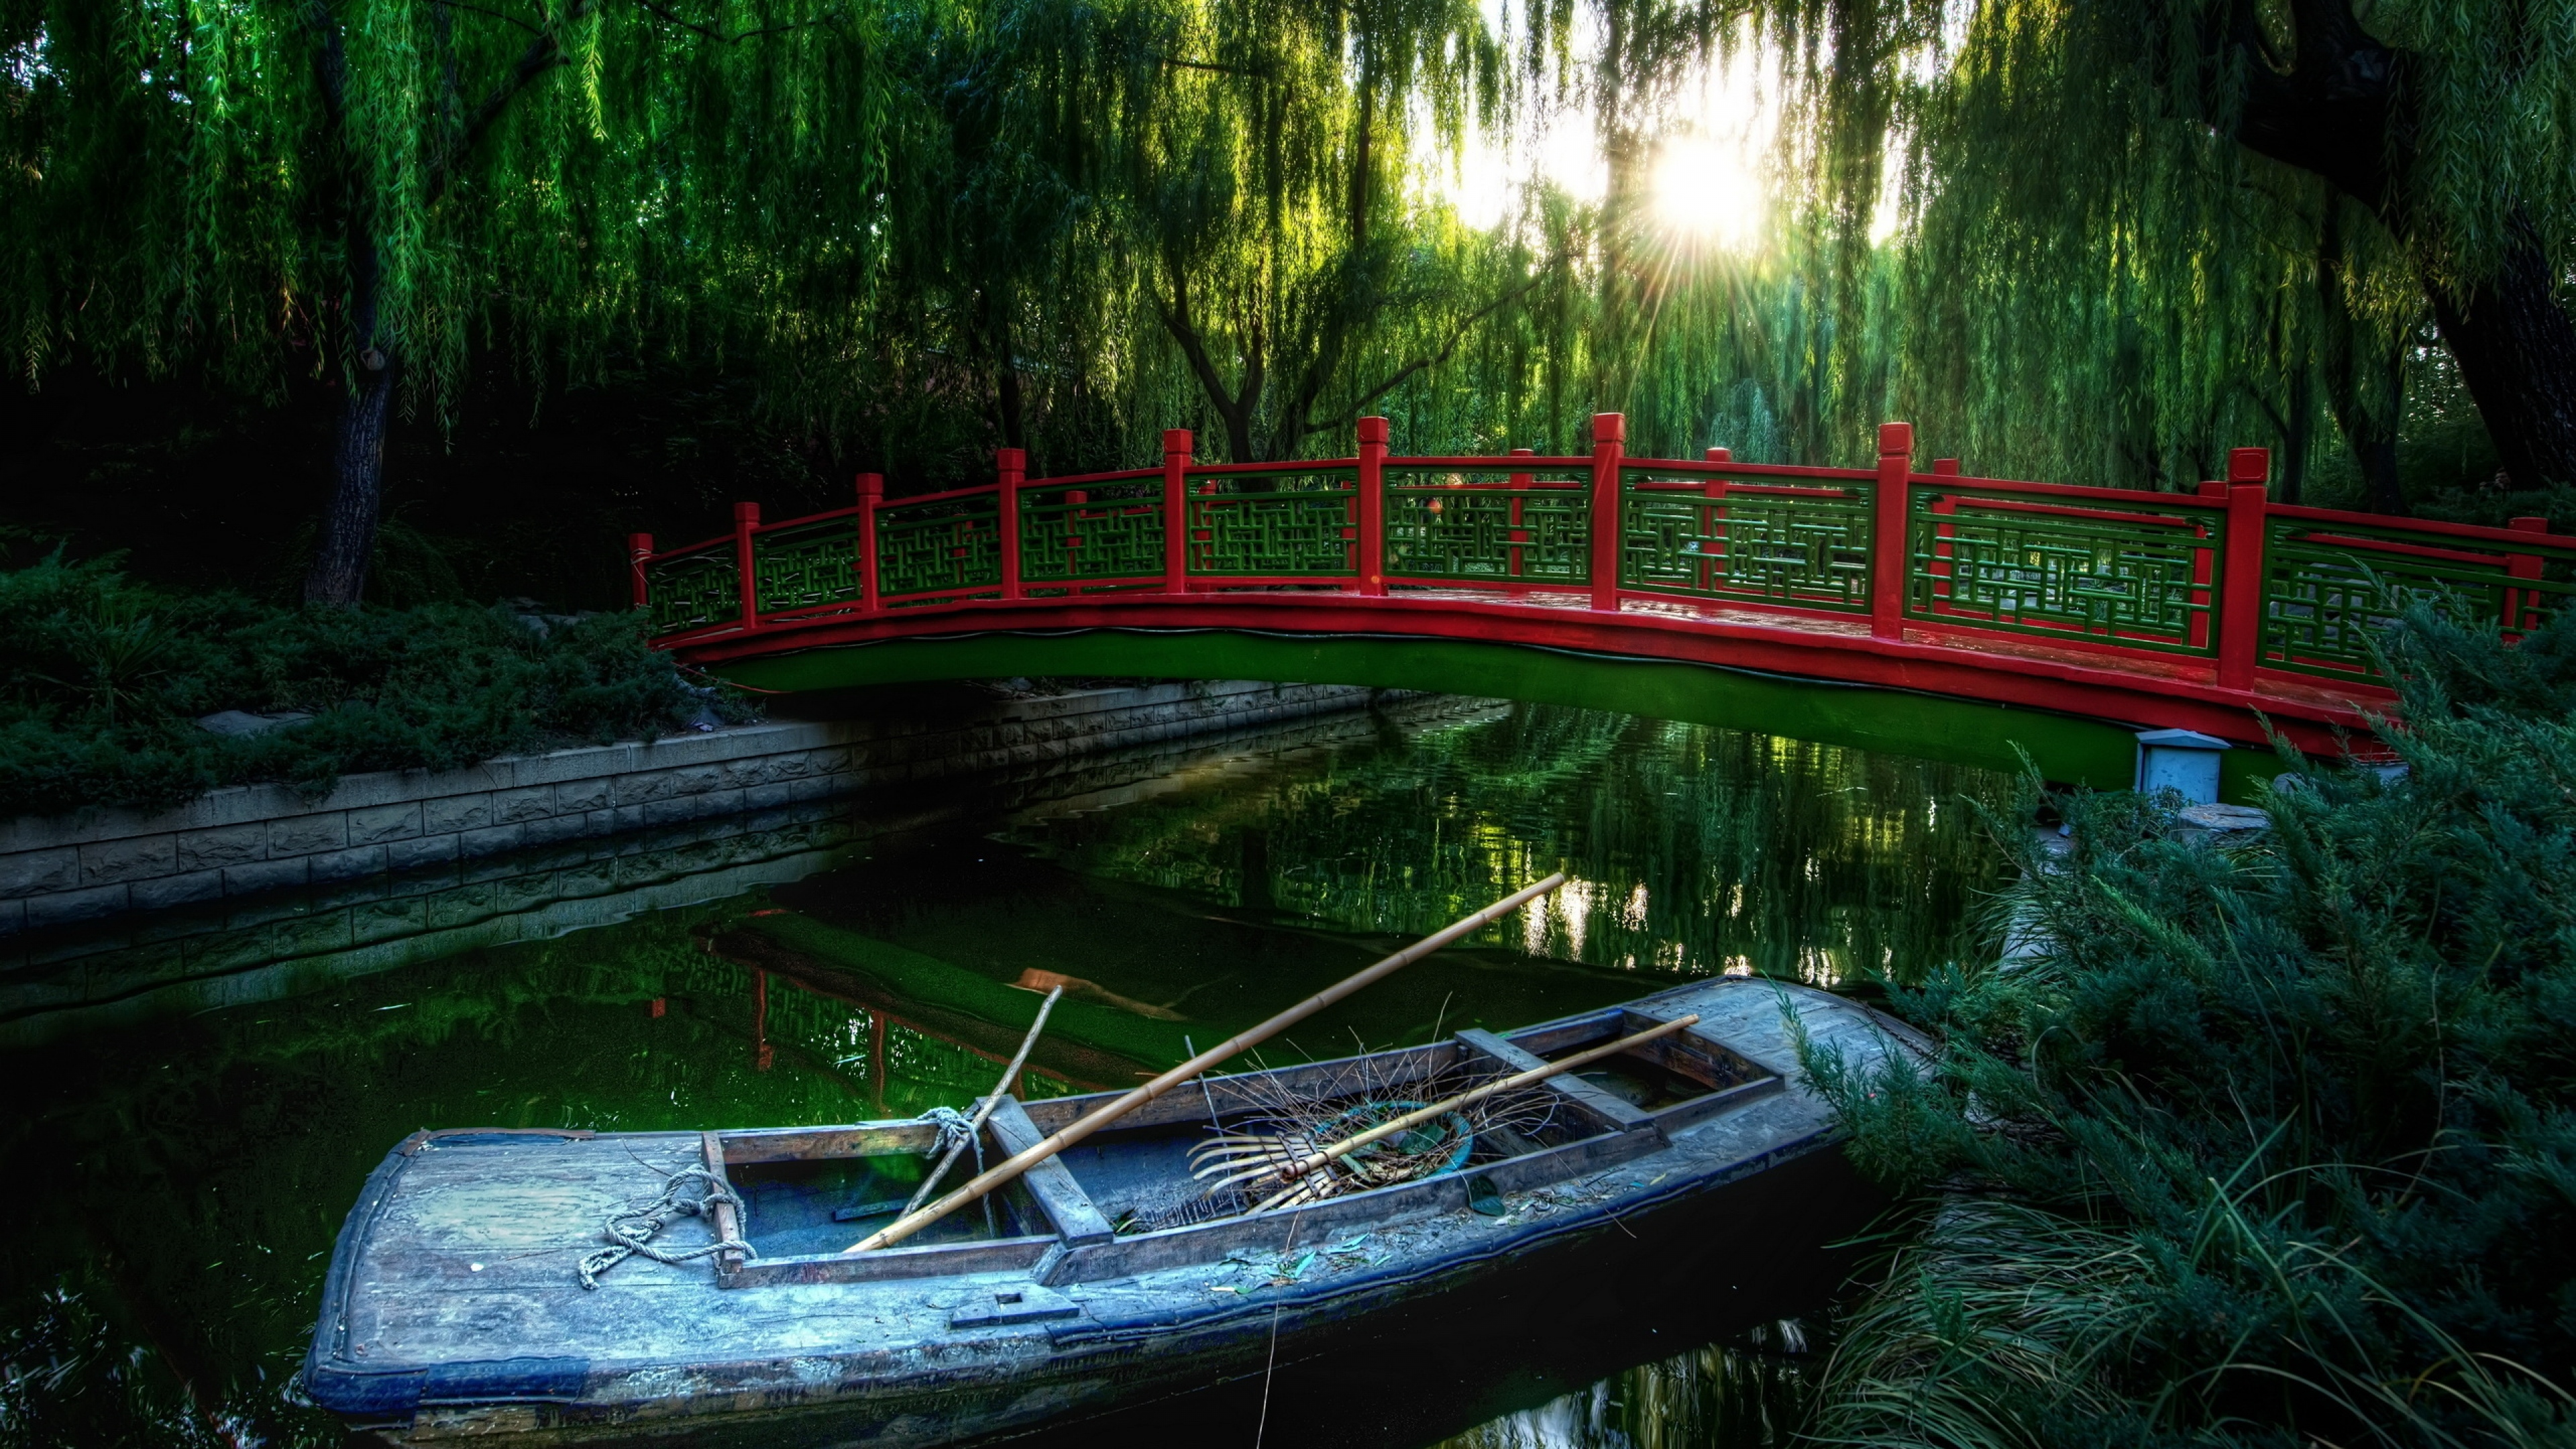 Chinese boat and brige on the river